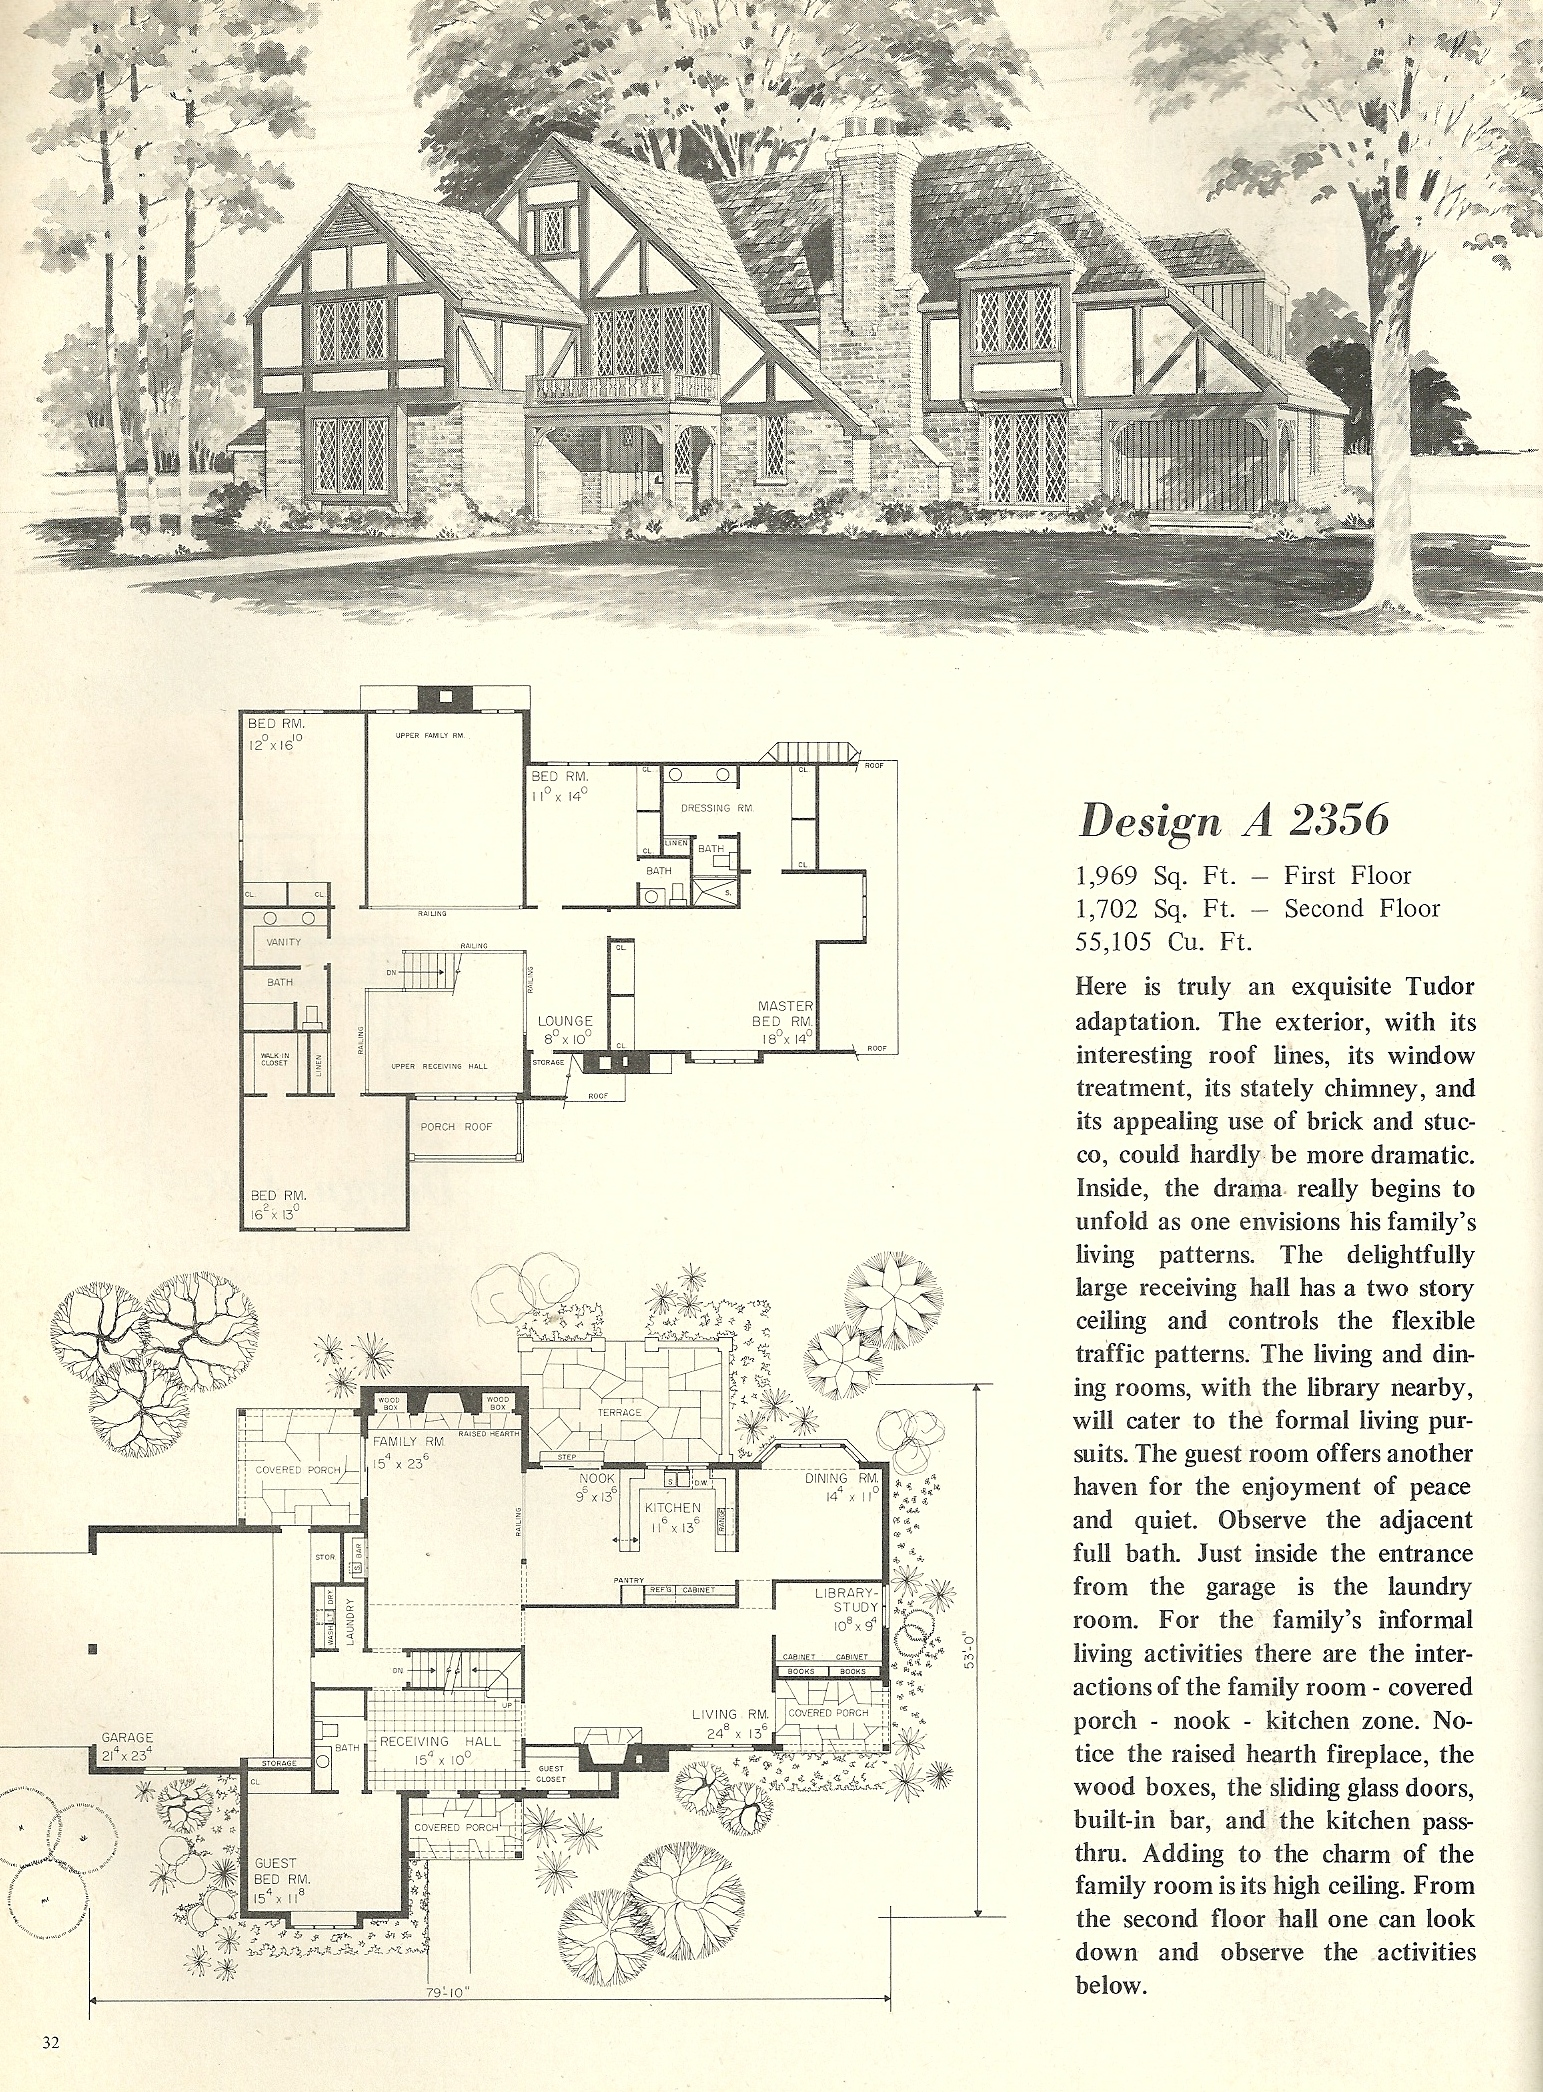 Vintage house plans 2356 antique alter ego for Tudor home plans